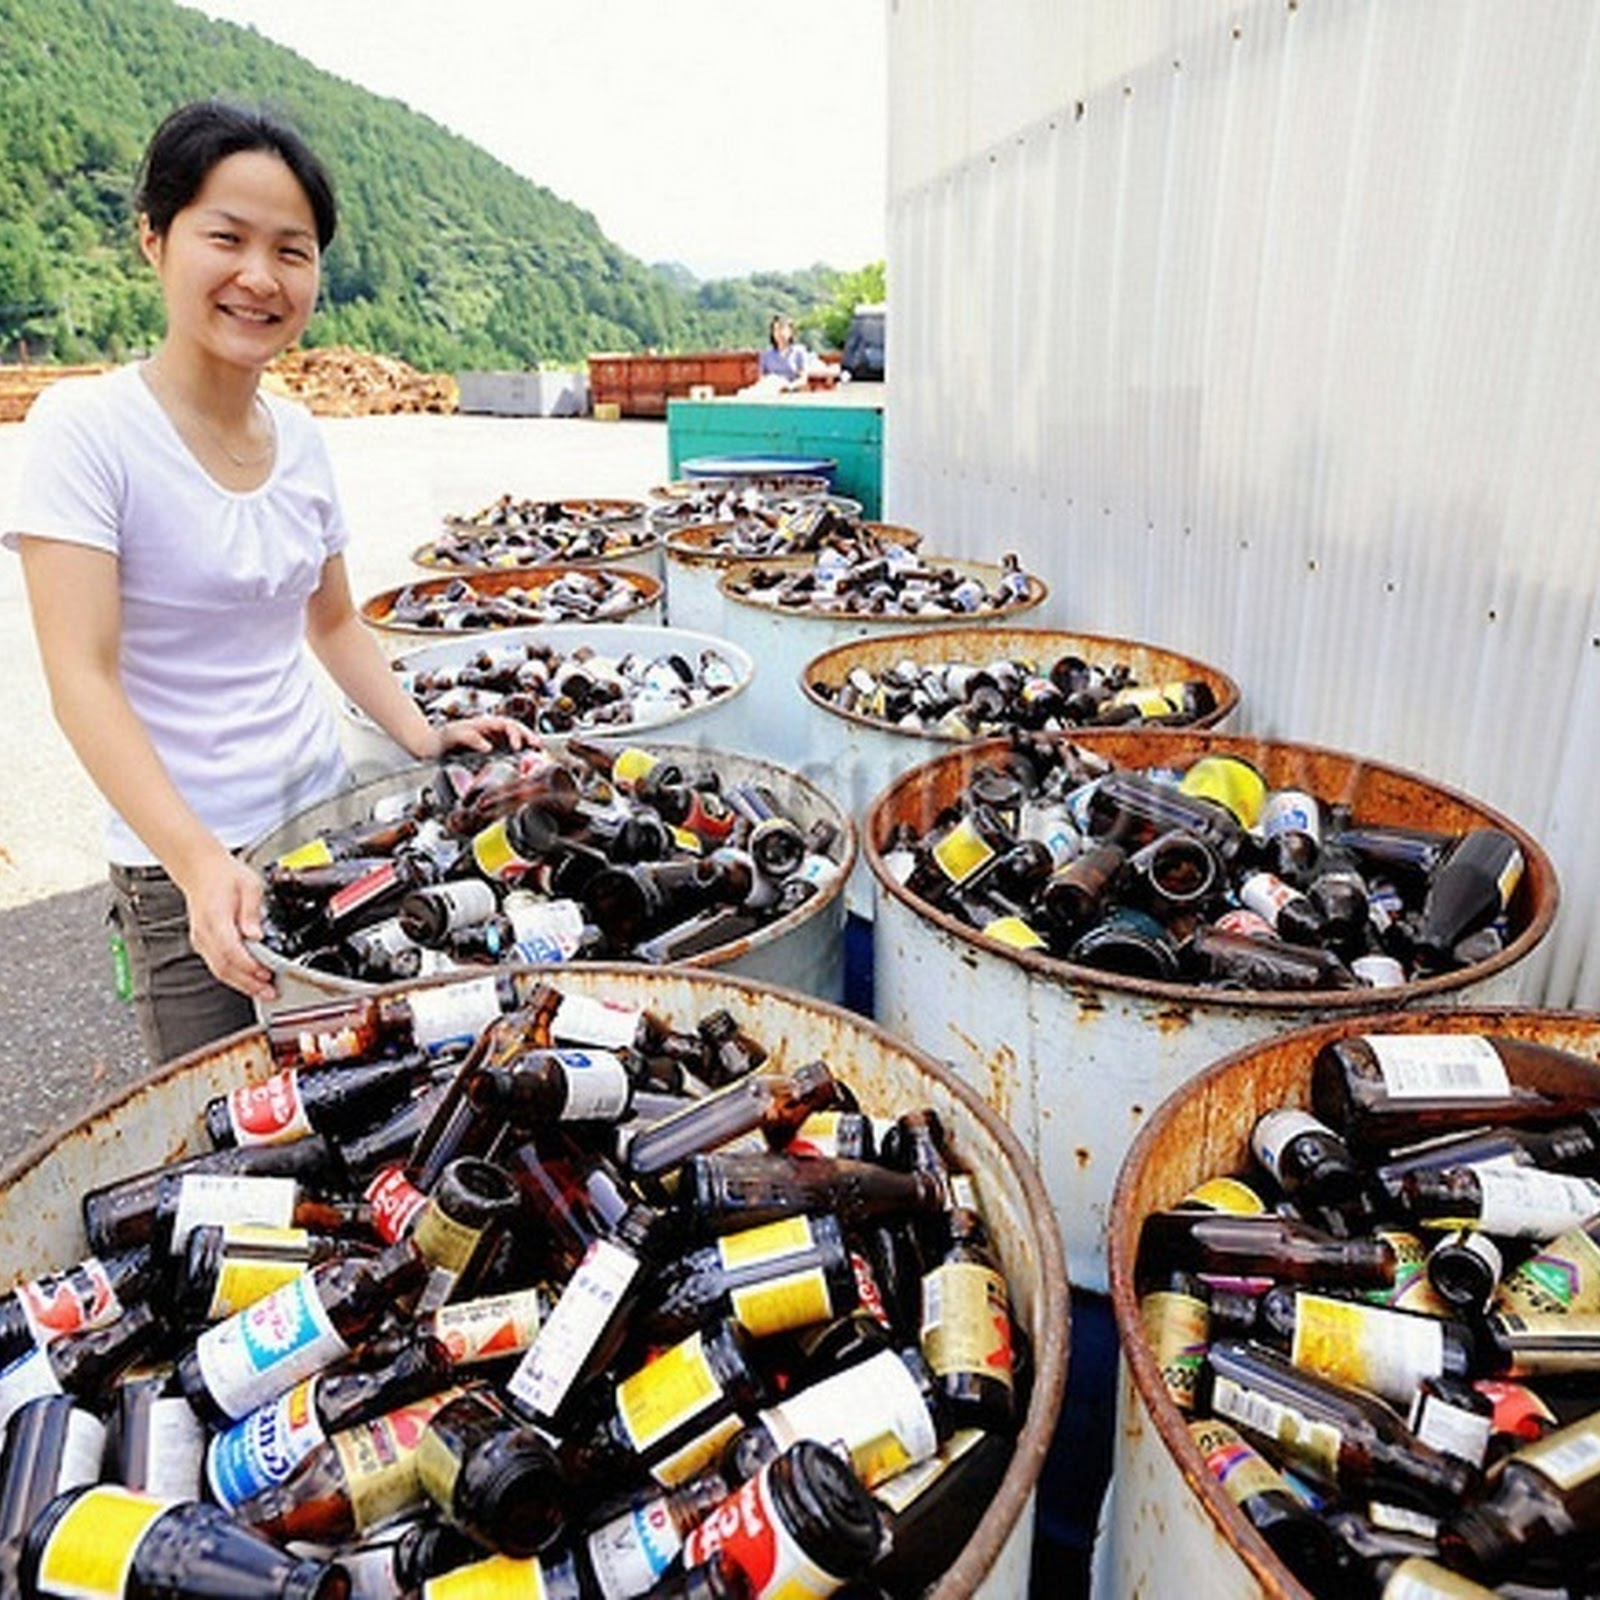 Kamikatsu: The Town That Produces No Trash